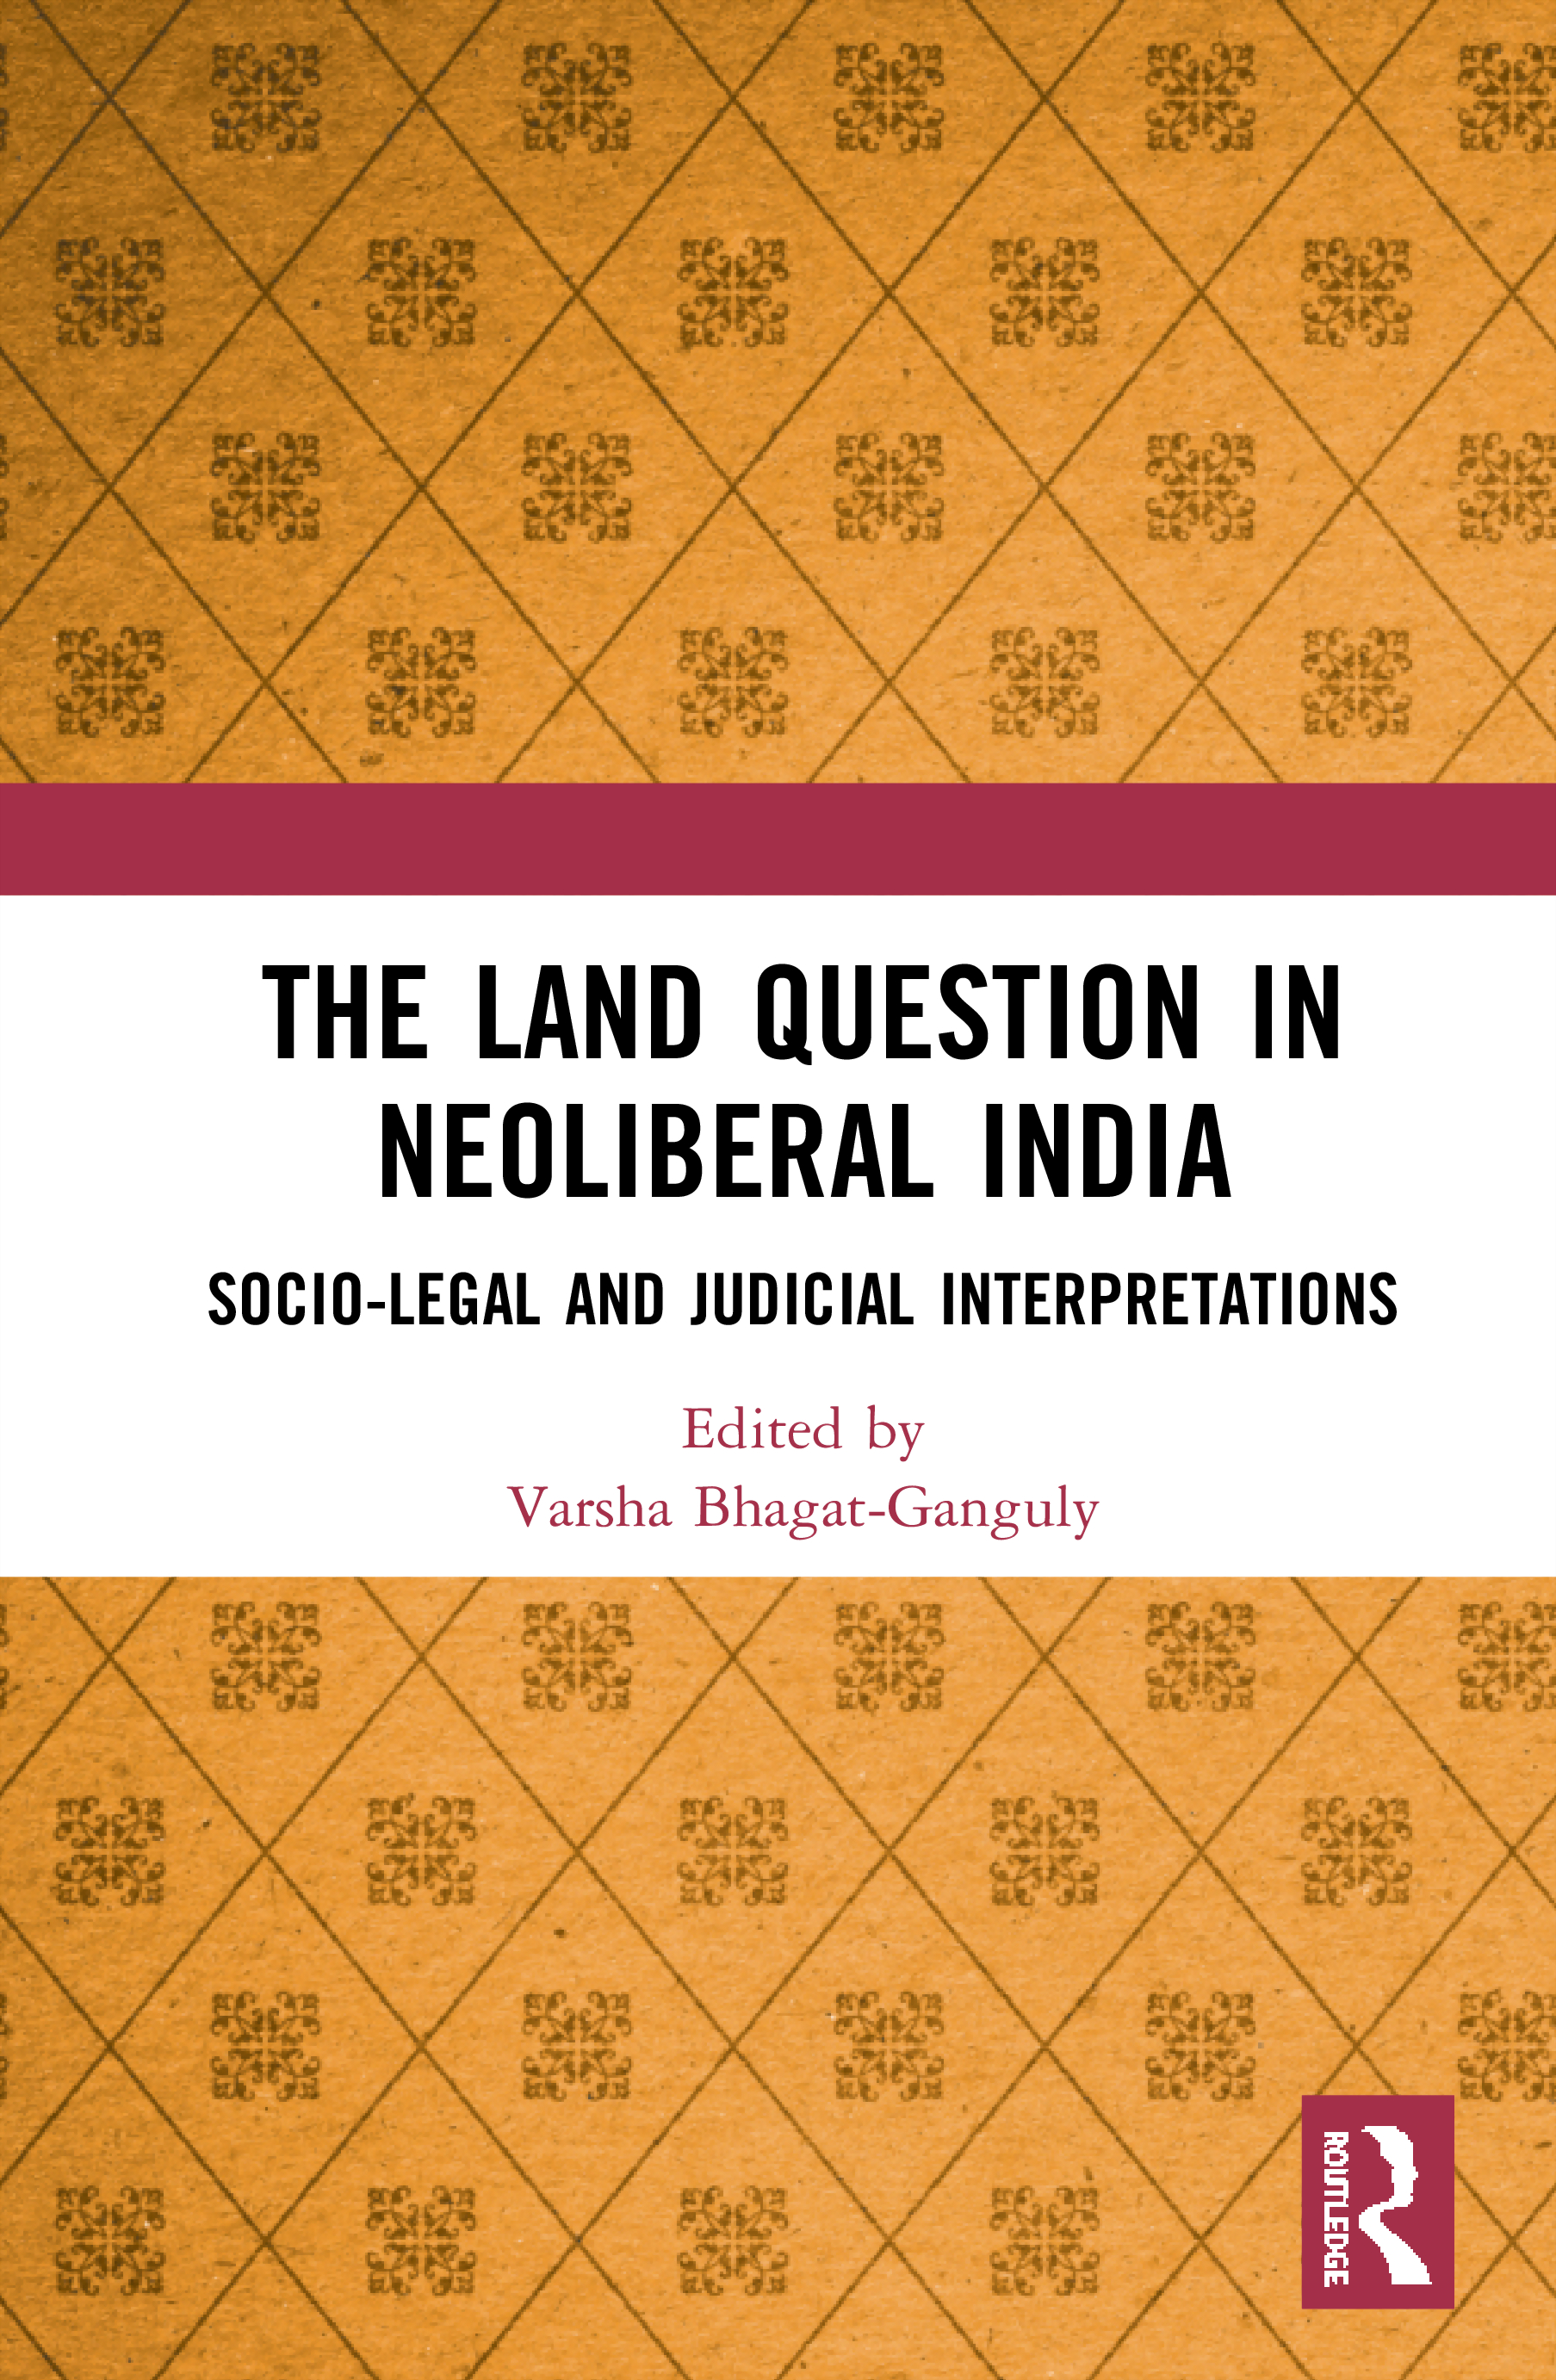 The Land Question in Neoliberal India: Socio-Legal and Judicial Interpretations book cover